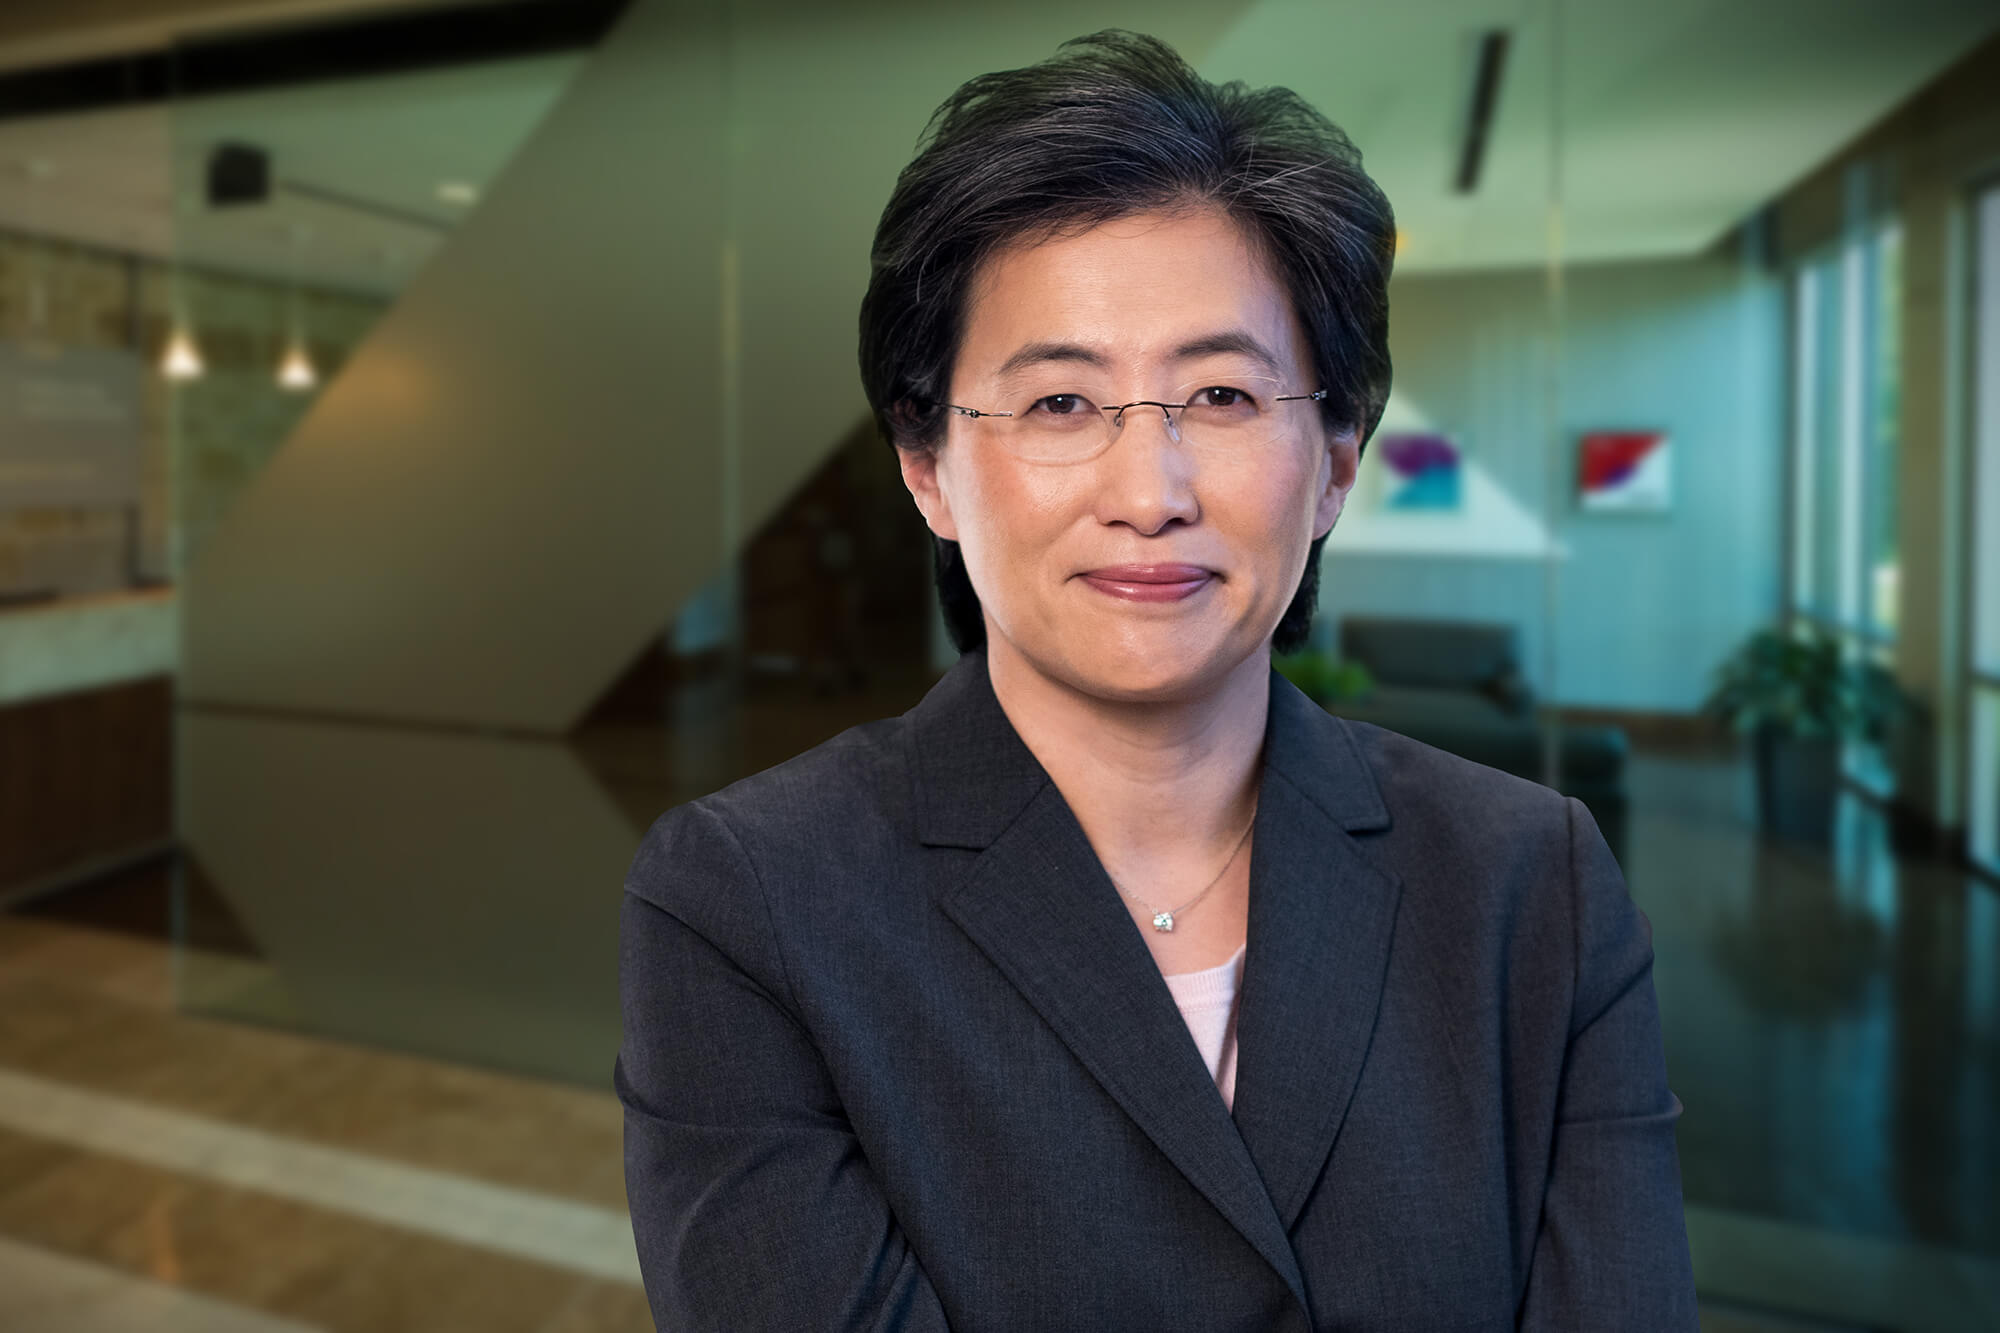 President Biden appoints AMD's Lisa Su to Council of Advisors on Science and Technology